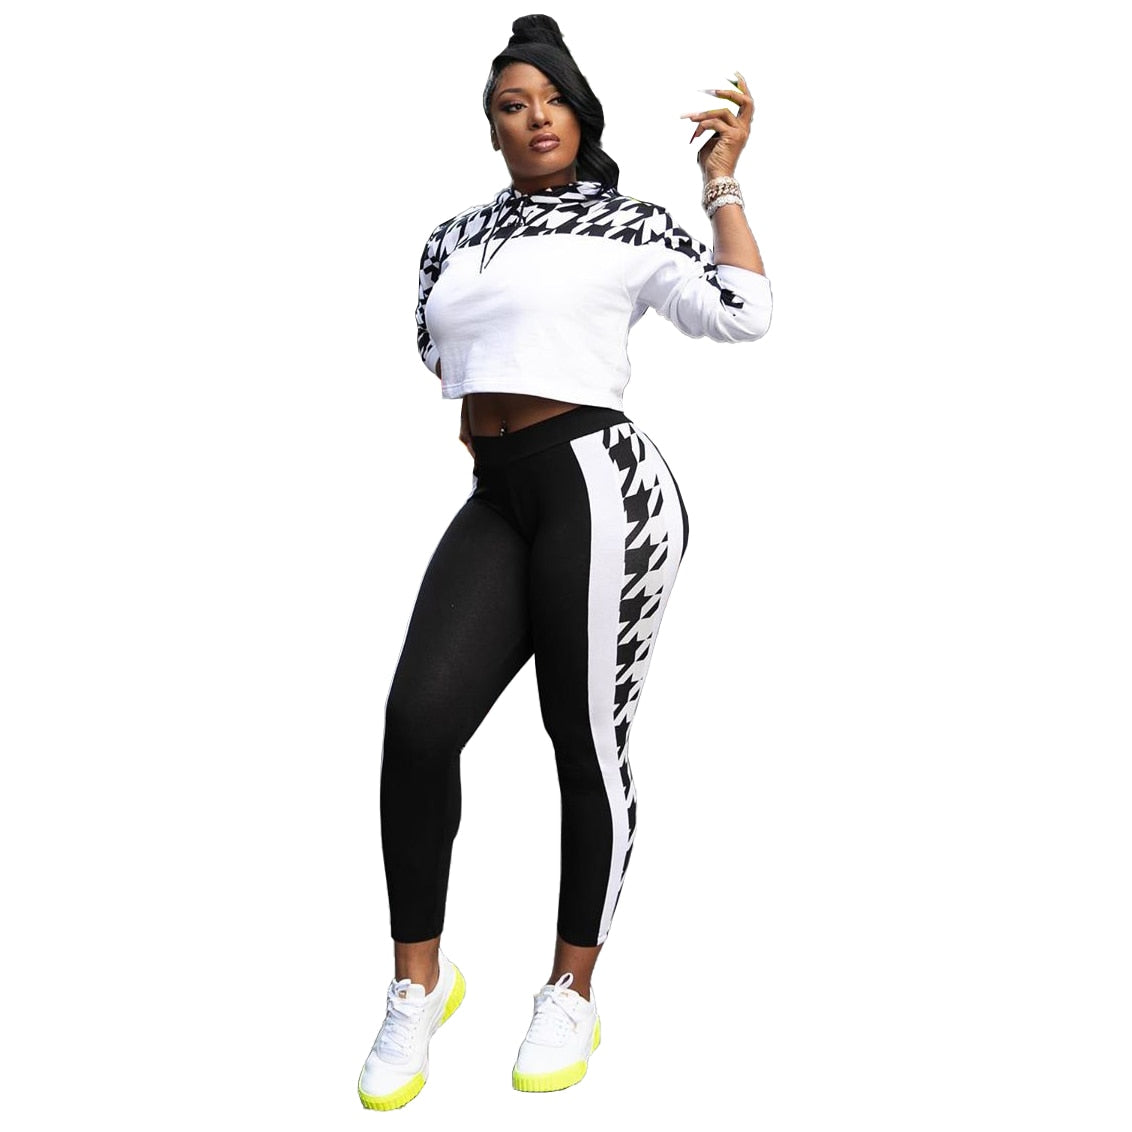 Winter Women Sets Full Sleeve Hooded Top+Pants Suits Plaid Print Two Piece Set Night Club Tracksuits Sporty Fitness Outfits 8092